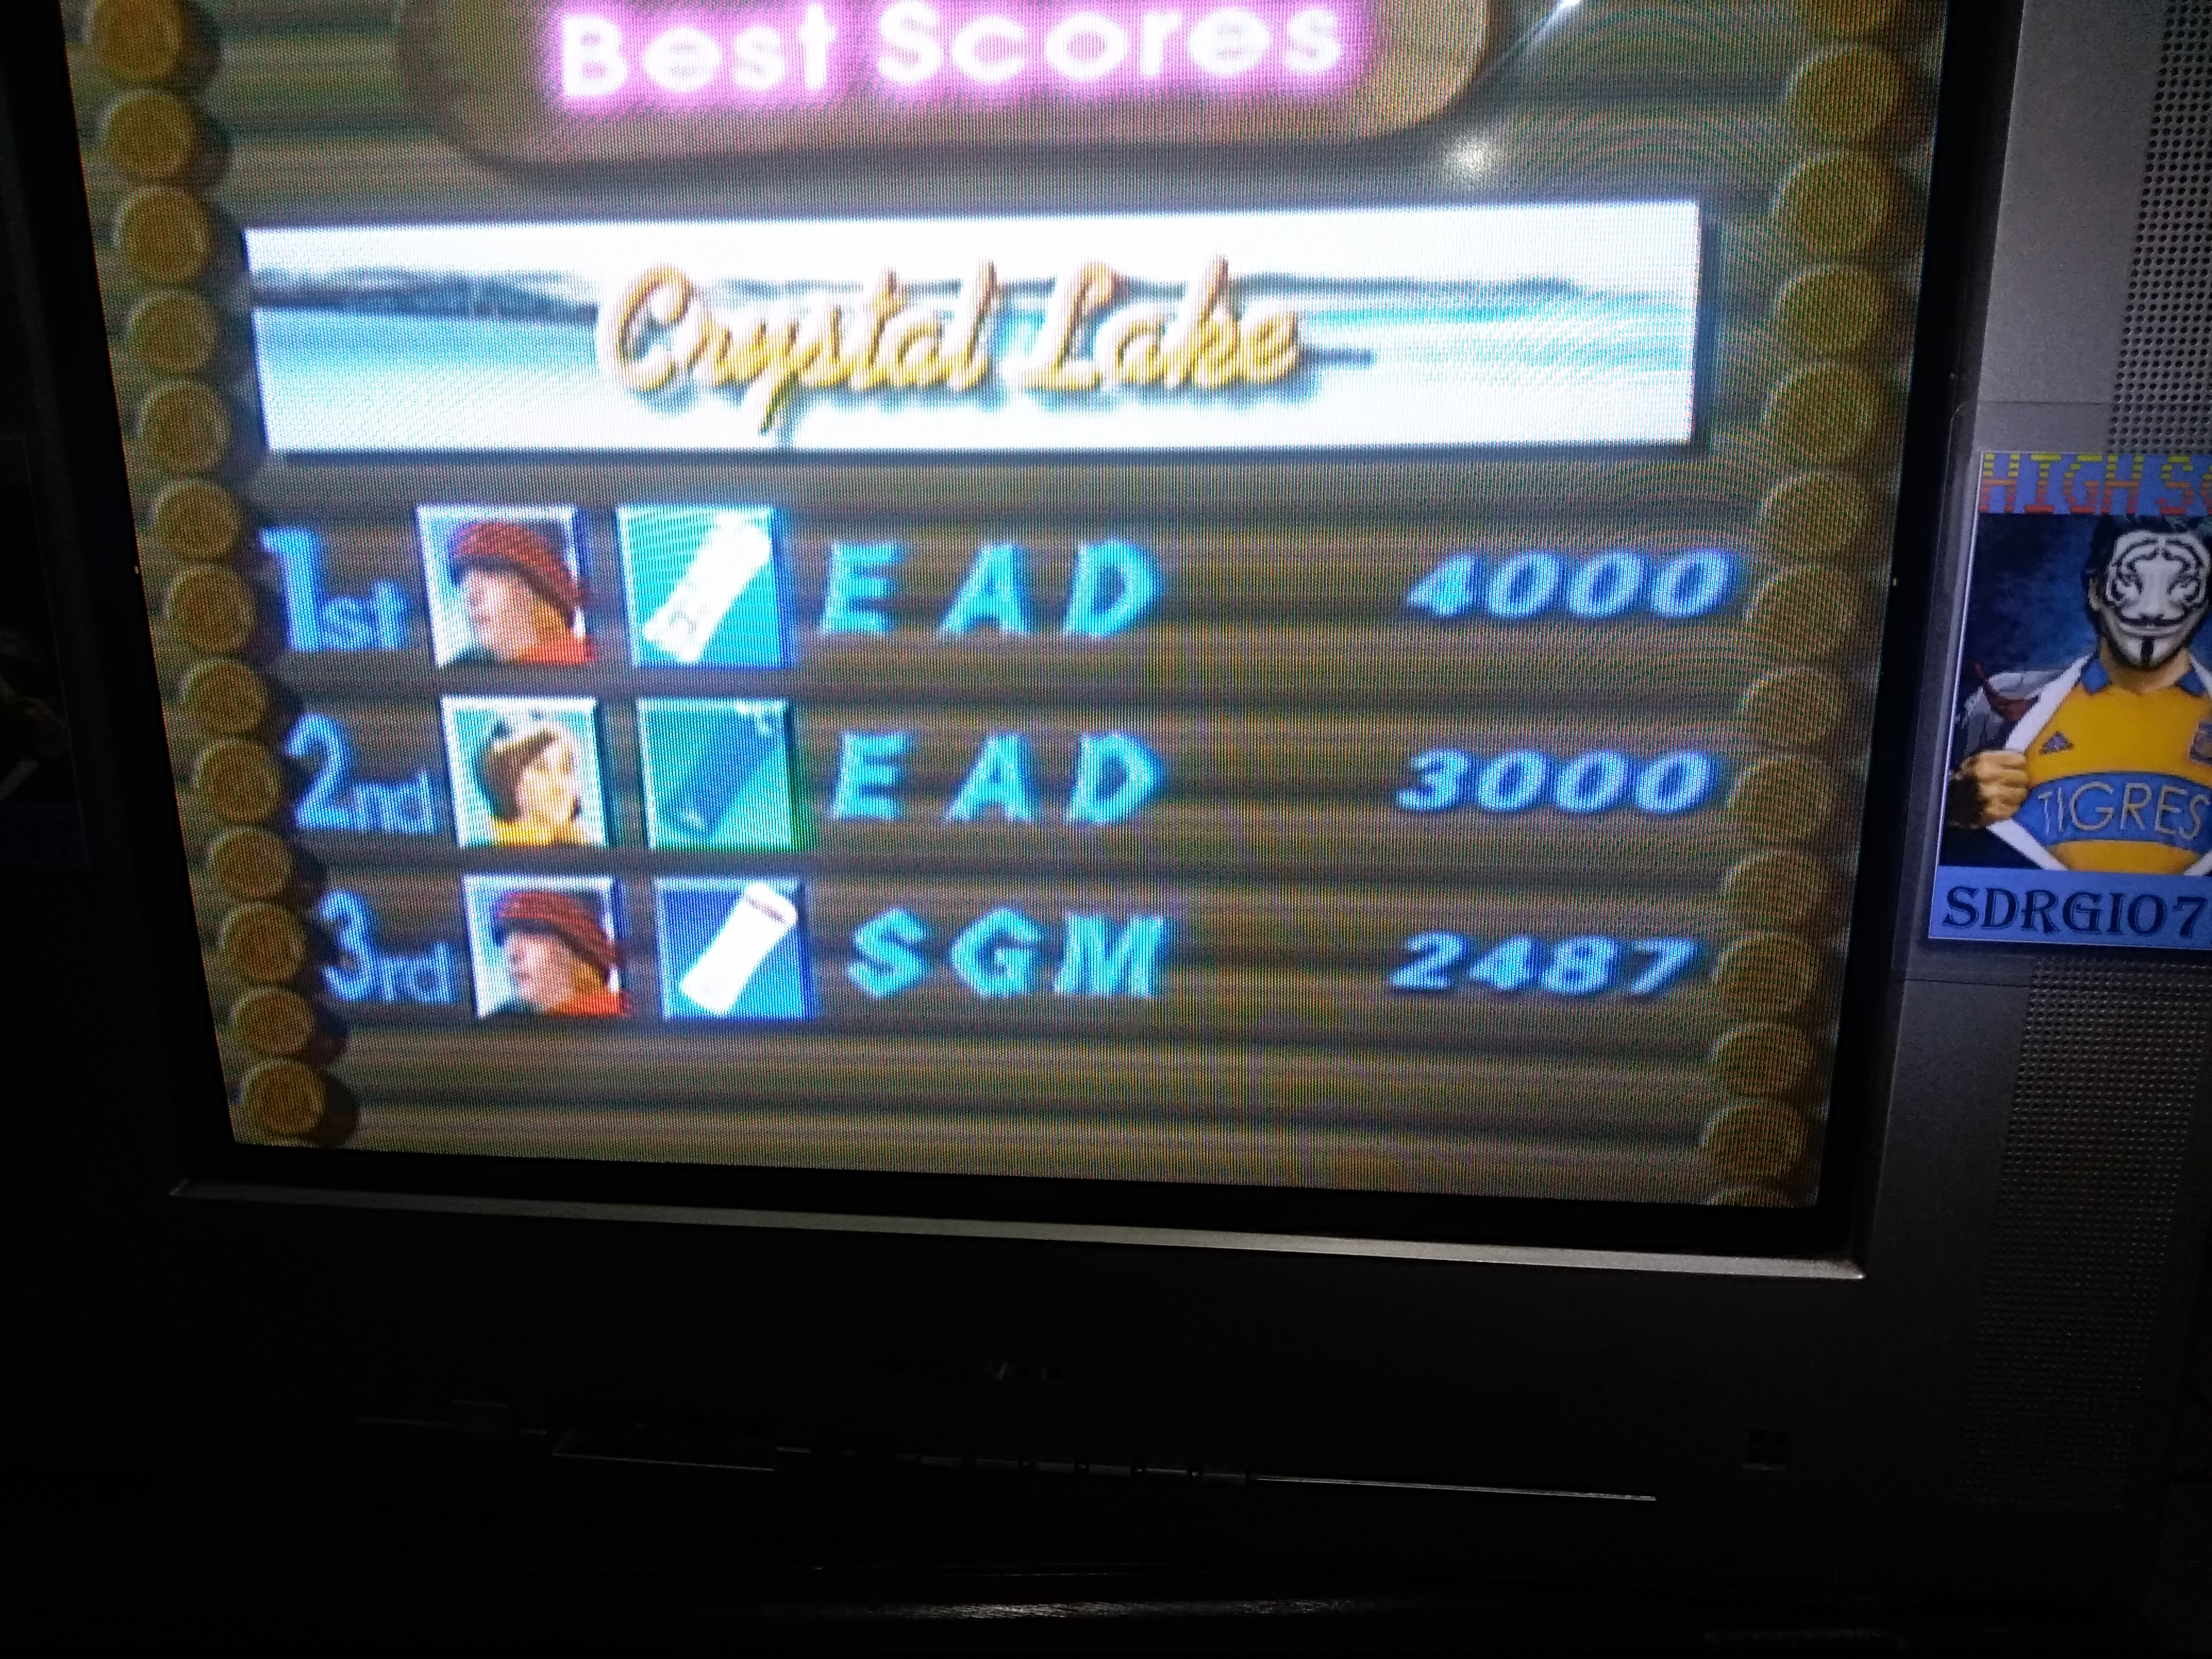 Sdrgio797: 1080 Snowboarding: Trick: Crystal Lake (N64 Emulated) 2,487 points on 2020-08-07 09:10:44